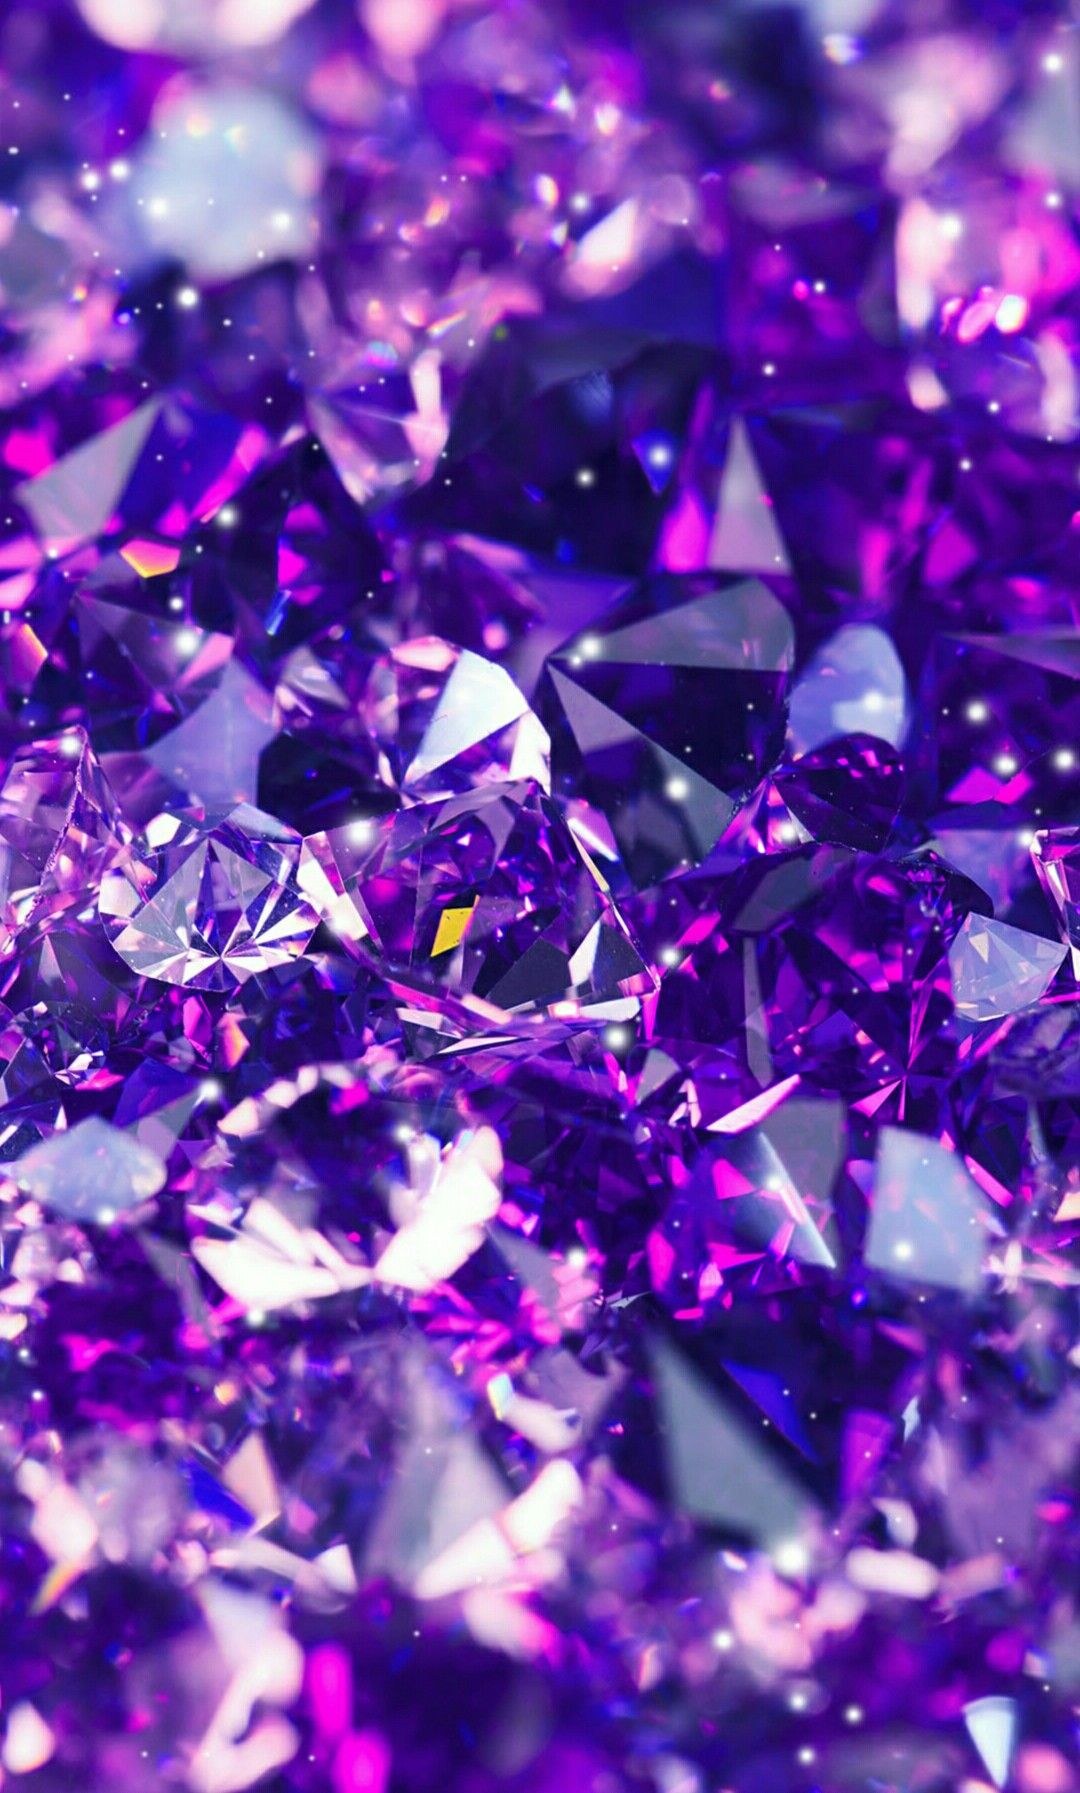 Wallpaper Love Violet : purple // gems Wallpaper // backgrounds Pinterest Gems, Wallpaper and Phone